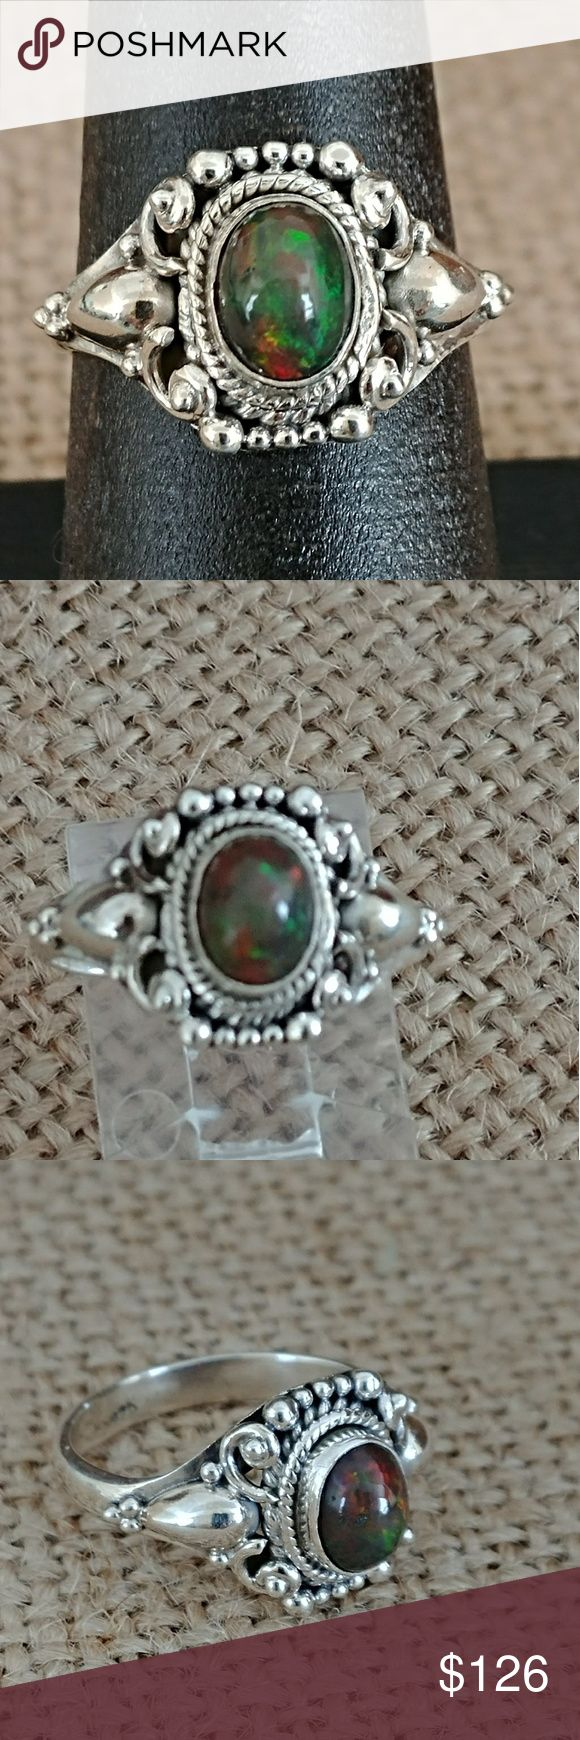 Australian Black Opal Ring Gorgeous natural Australian Black Opal set in a solid sterling silver traditional hand tooled ring. Black antiquing and scroll work make this a truly exotic ring. Size 7 Jewelry Rings